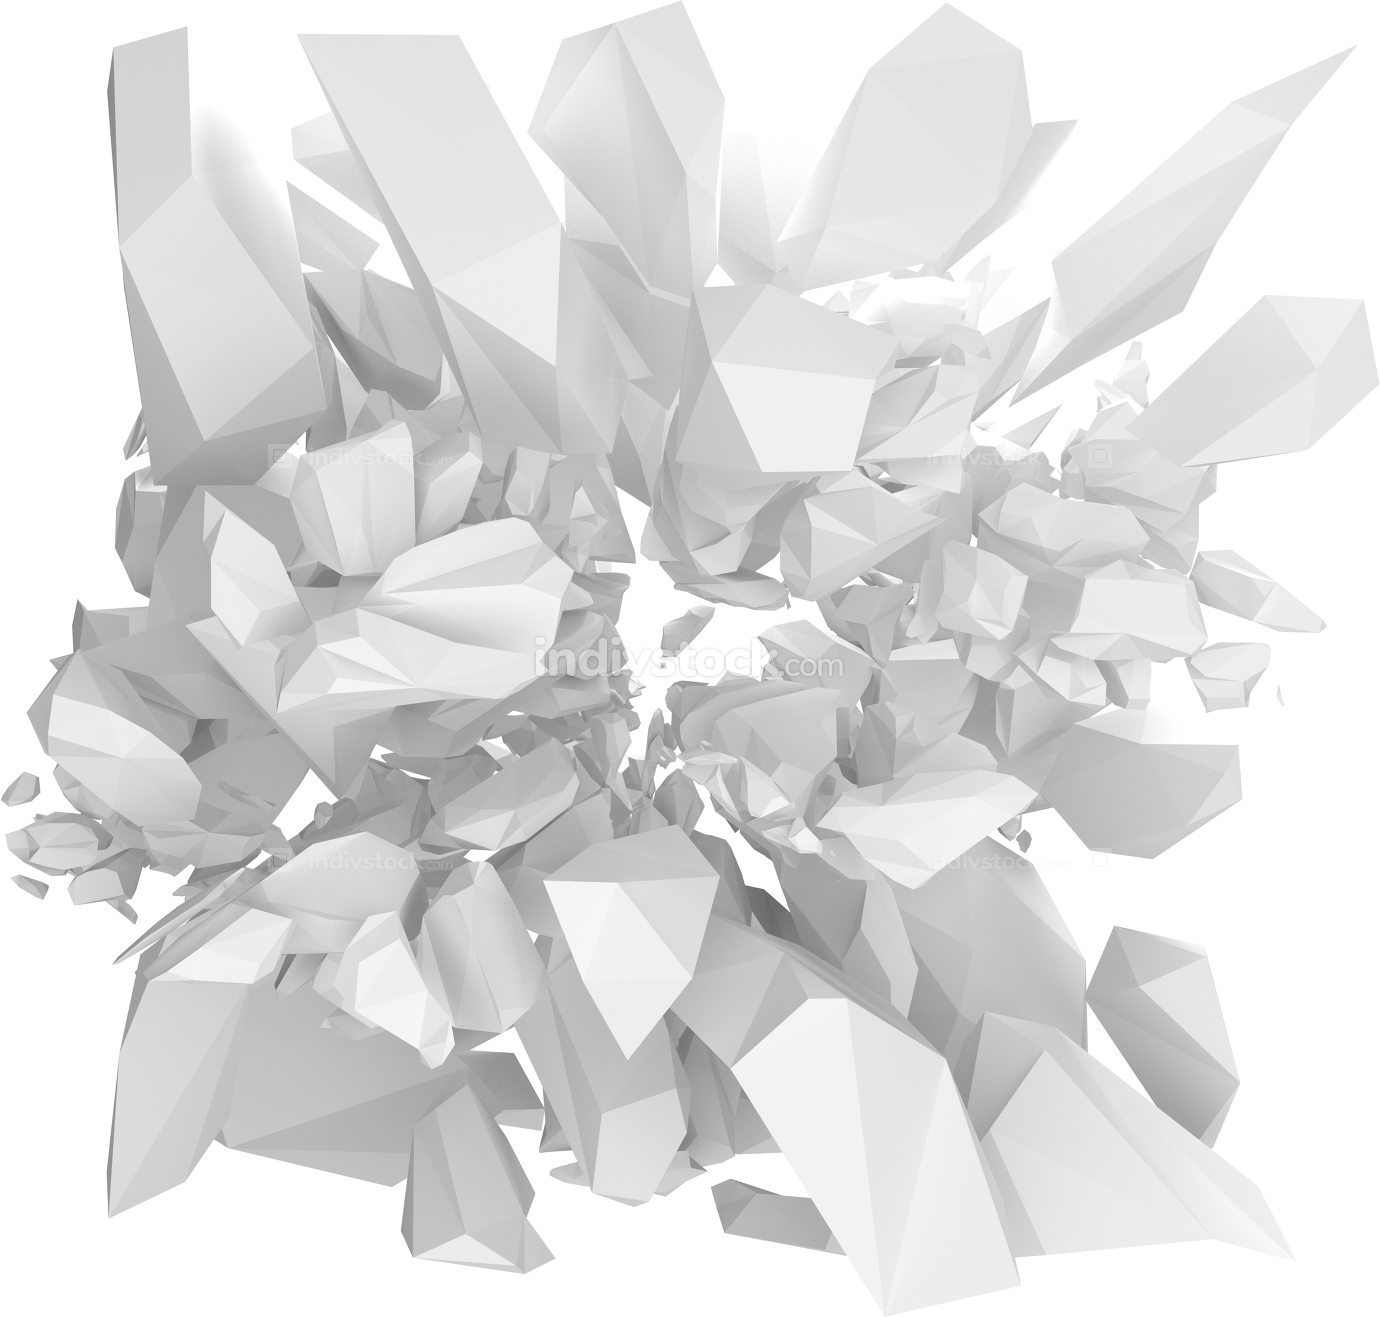 white solid structure bursting 3d render